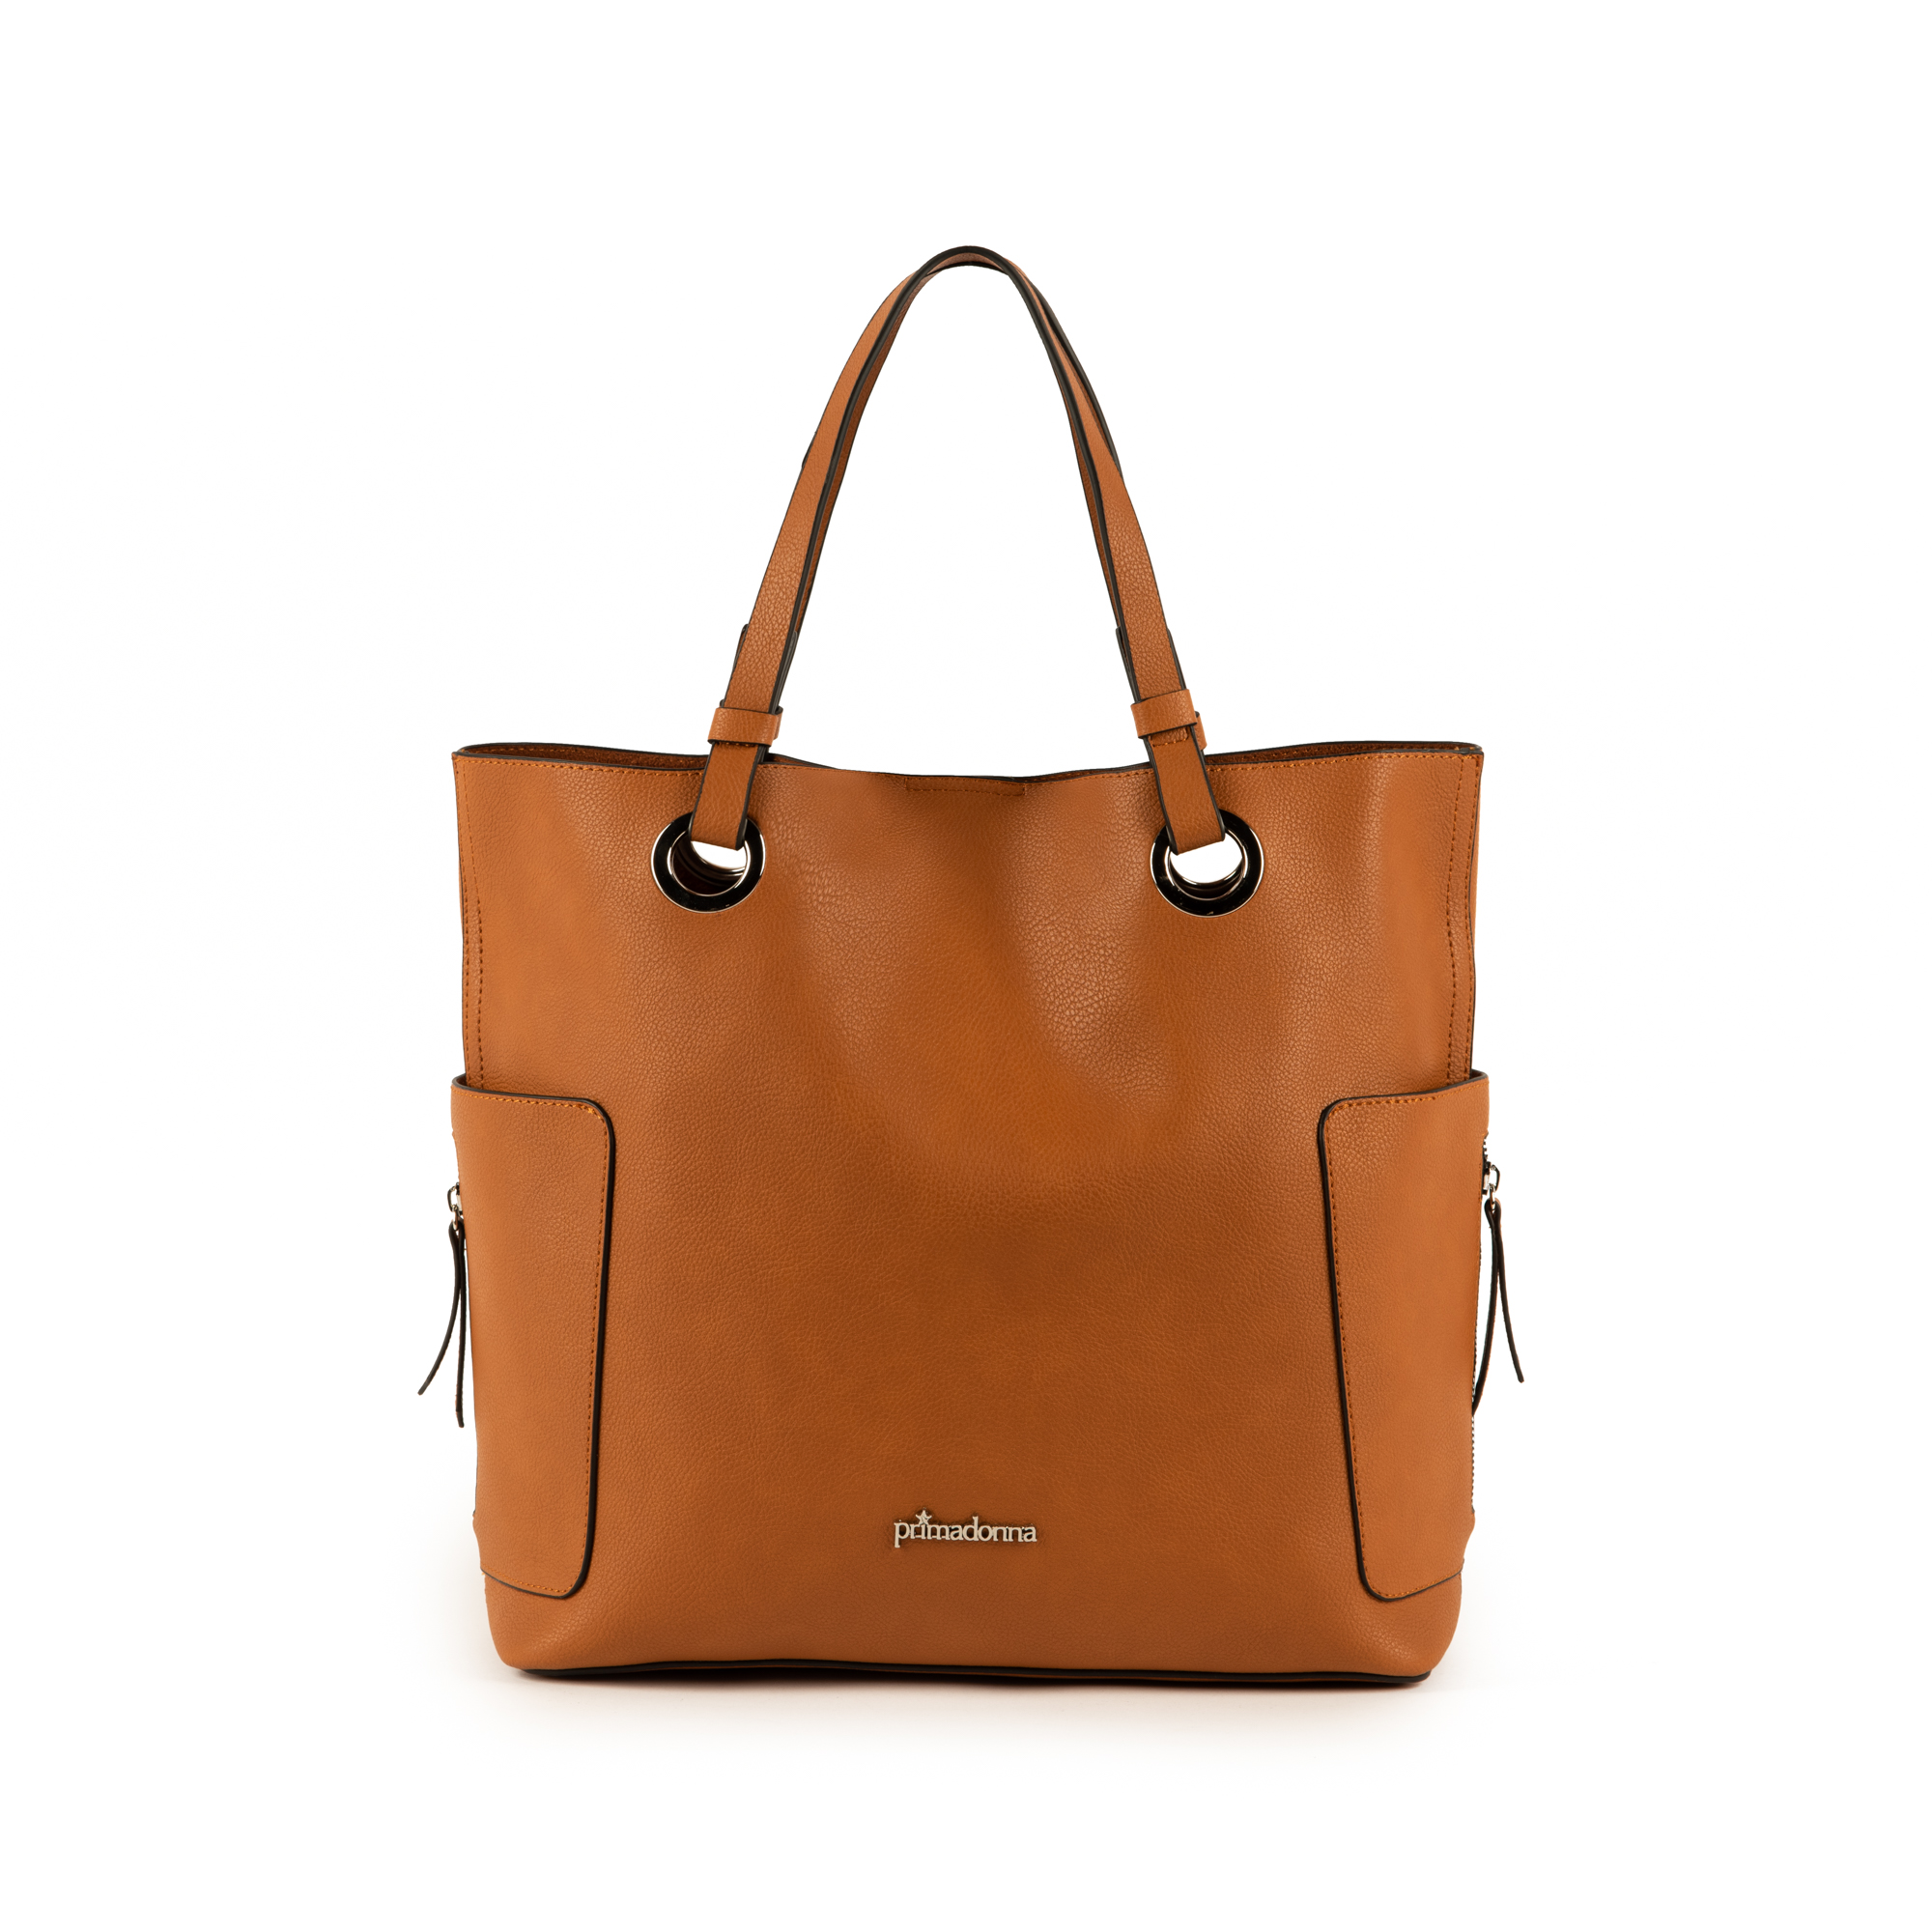 Maxi-bag color cuero